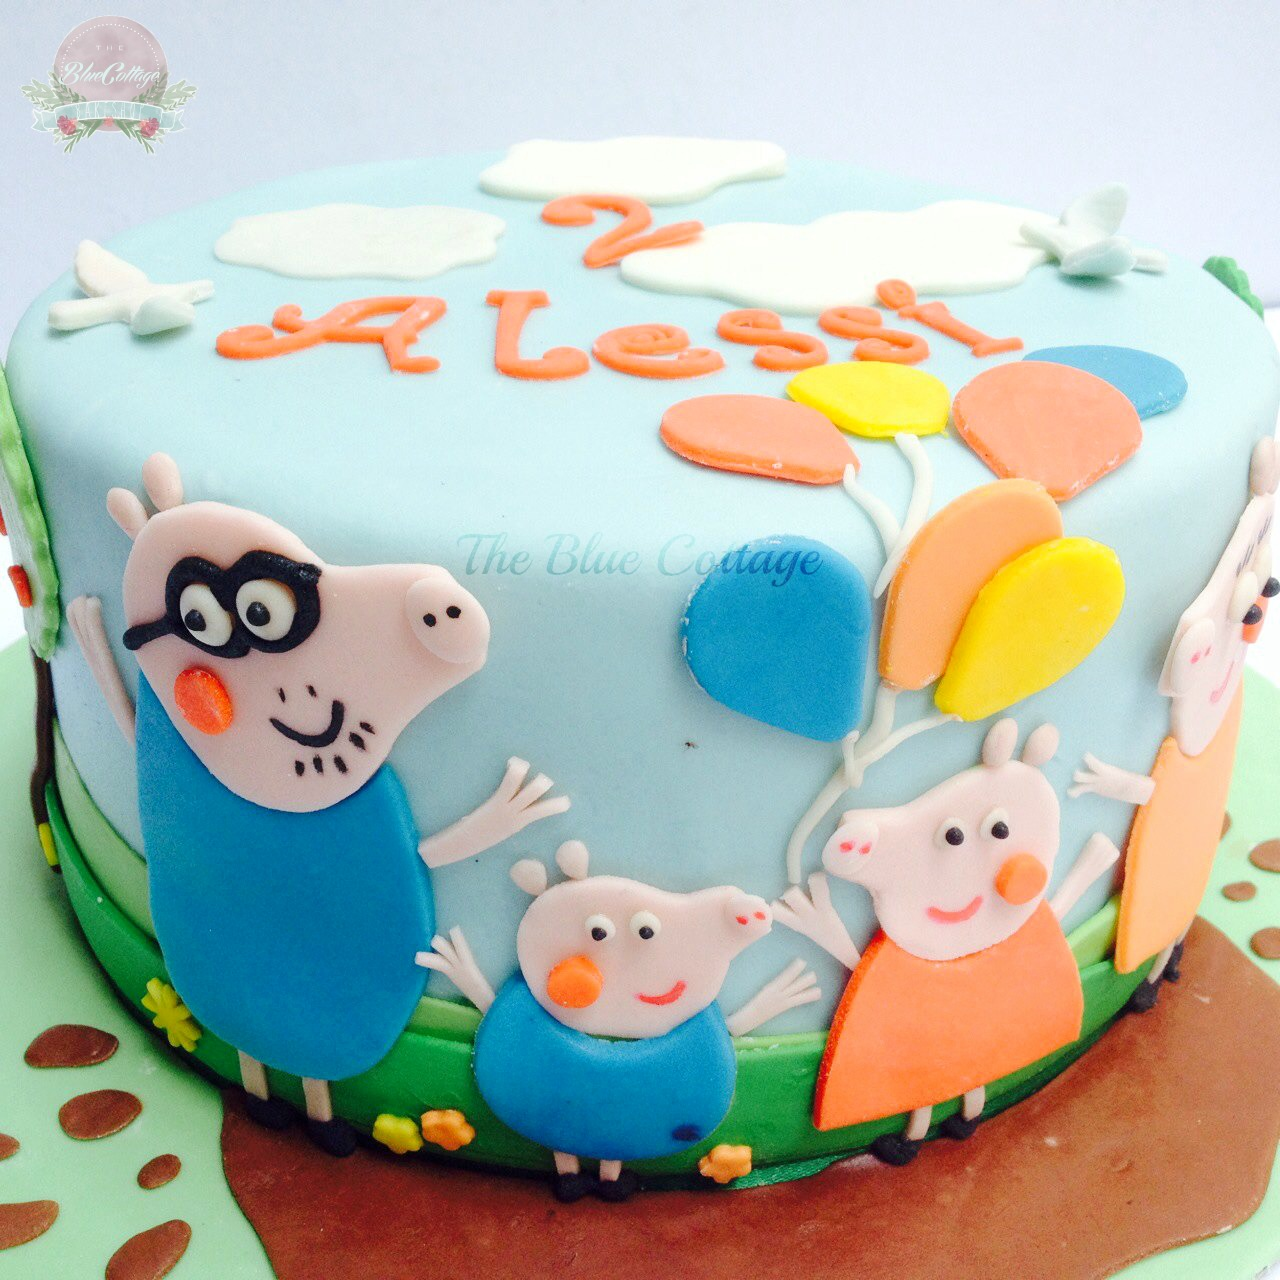 The Blue Cottage Birthday Cake Peppa Pig And Family